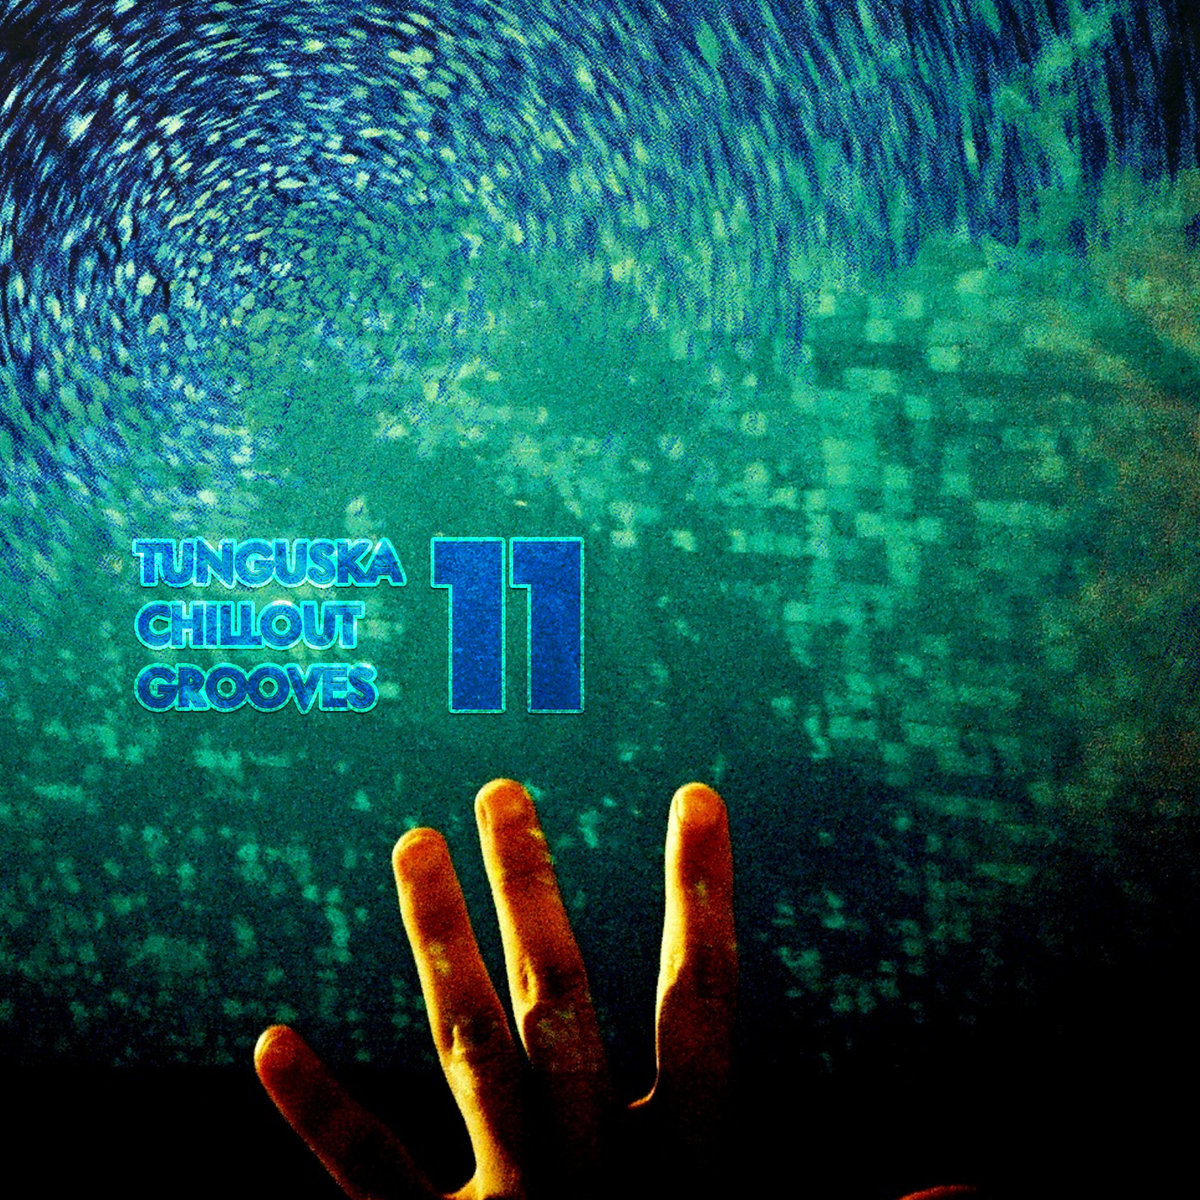 Empiric - I'm Waiting @ 'Tunguska Chillout Grooves - Volume 11' album (electronic, ambient)